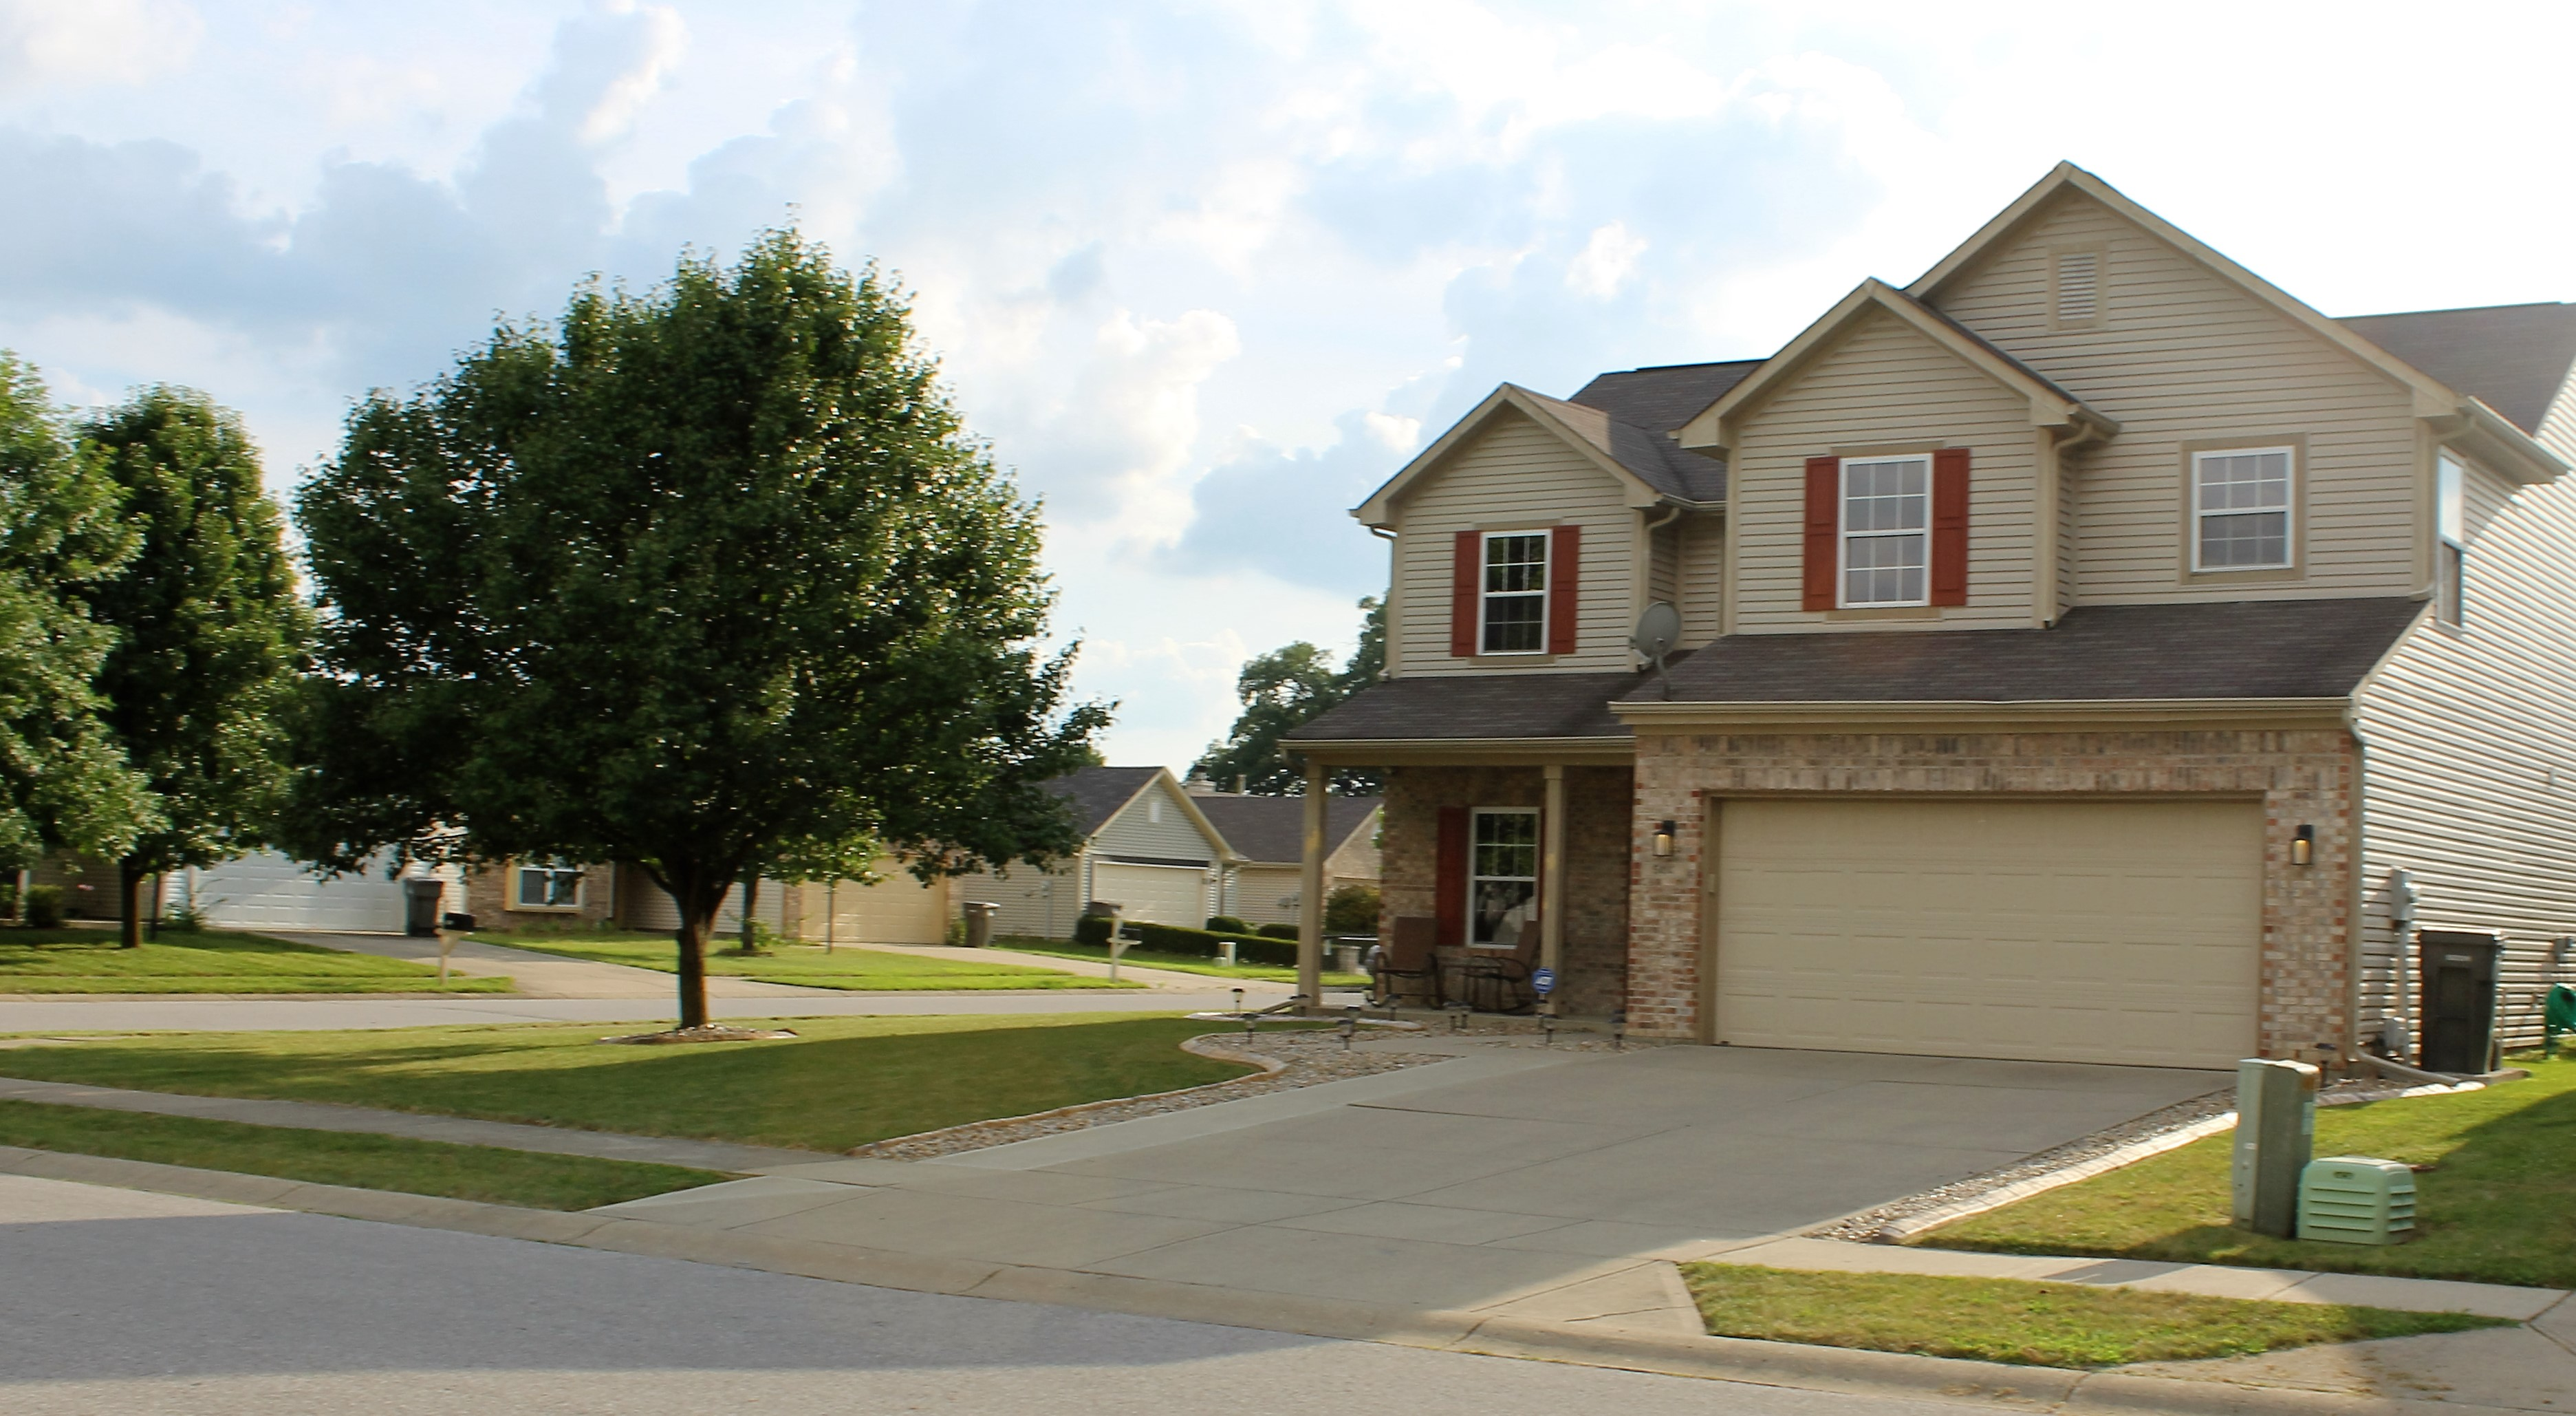 5414 Rocky Mountain Dr, Indianapolis, IN 46237